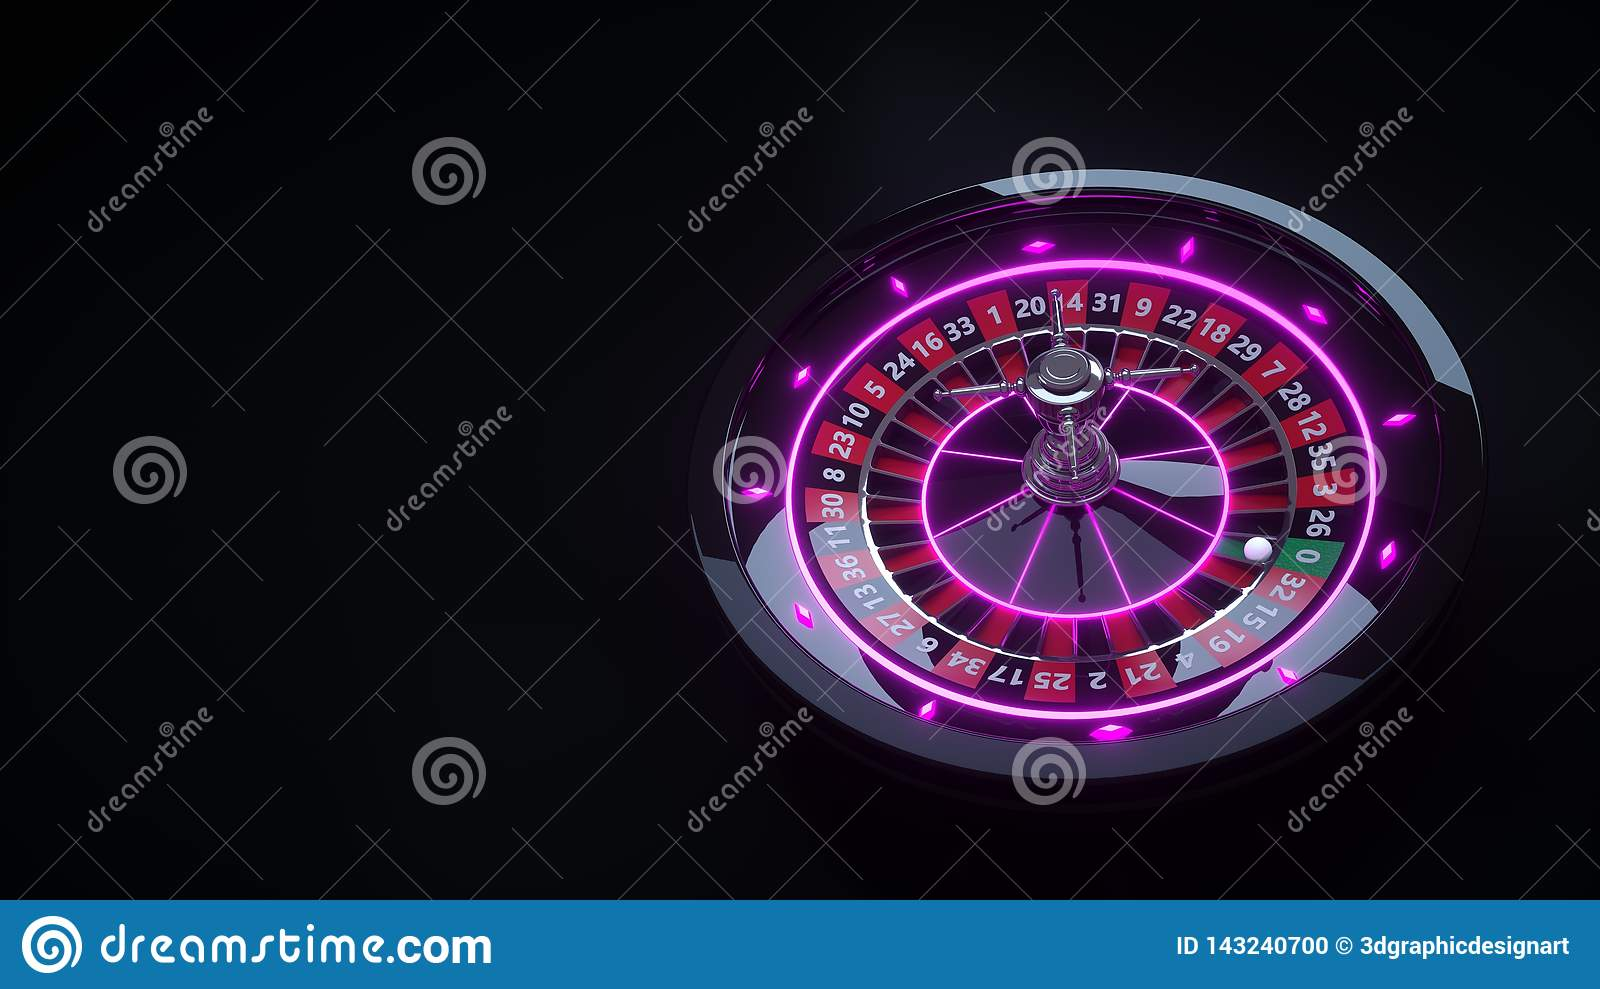 Luxury Casino Gambling Roulette Wheel 3D Realistic With Neon Lights - 3D Illustration